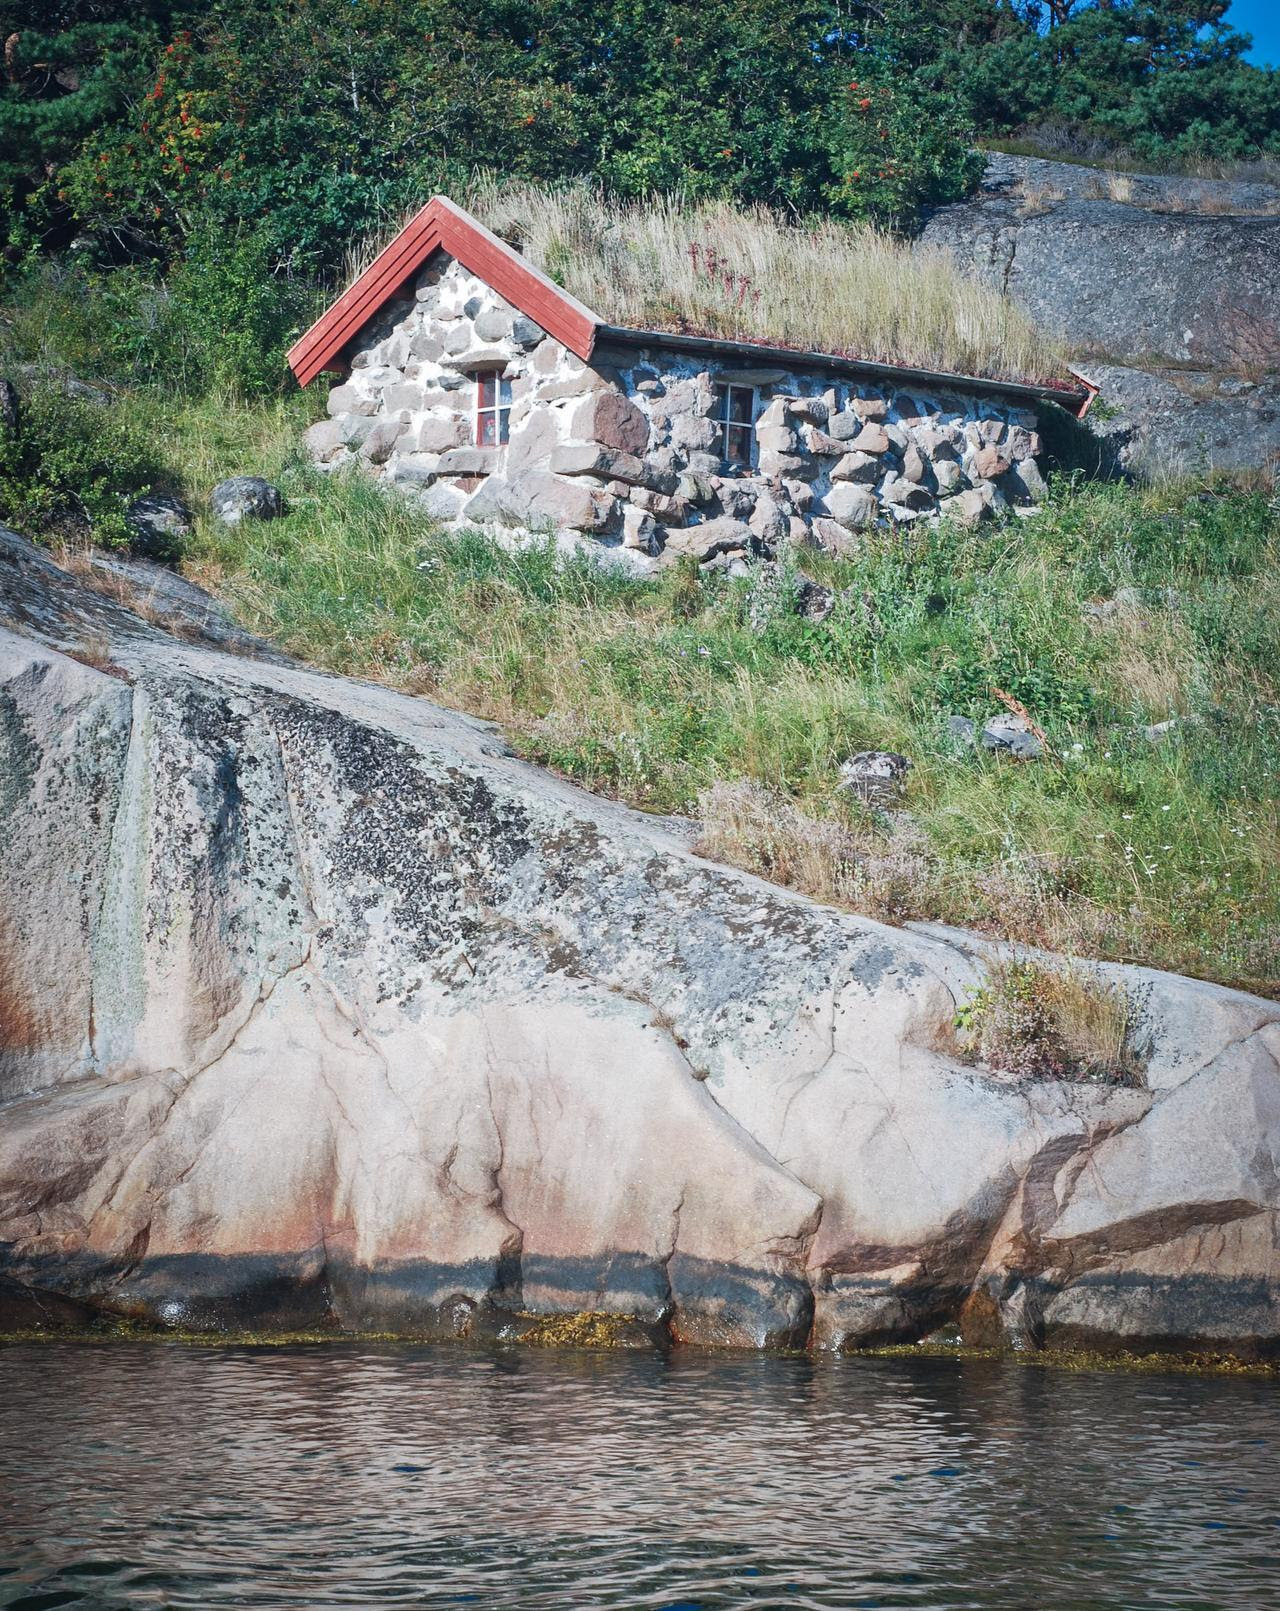 Western Coast, Lysekil, Sweden Submitted by Anders Tenfält